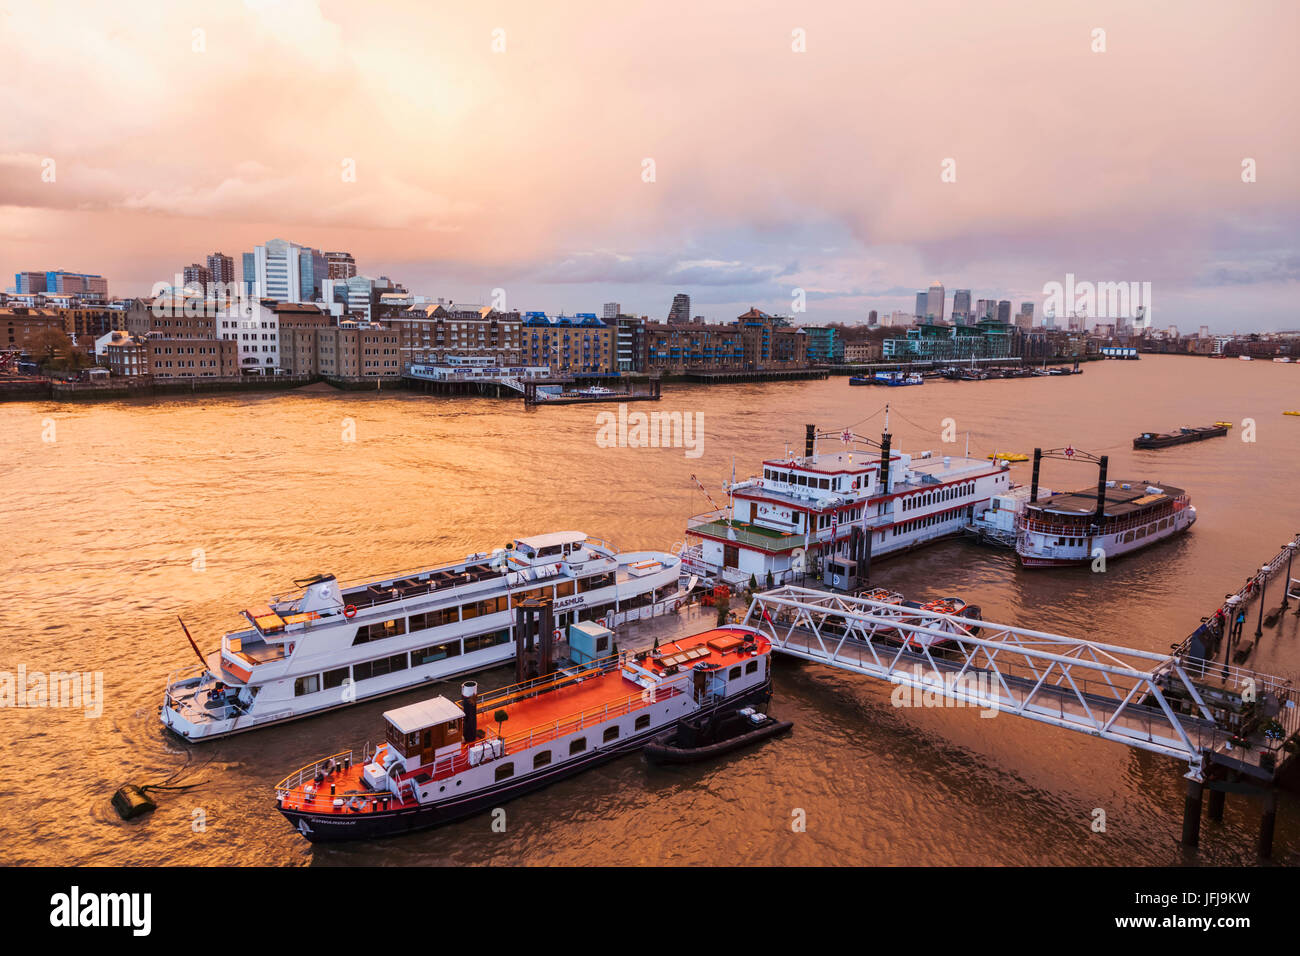 England, London, River Thames and Docklands Skyline - Stock Image